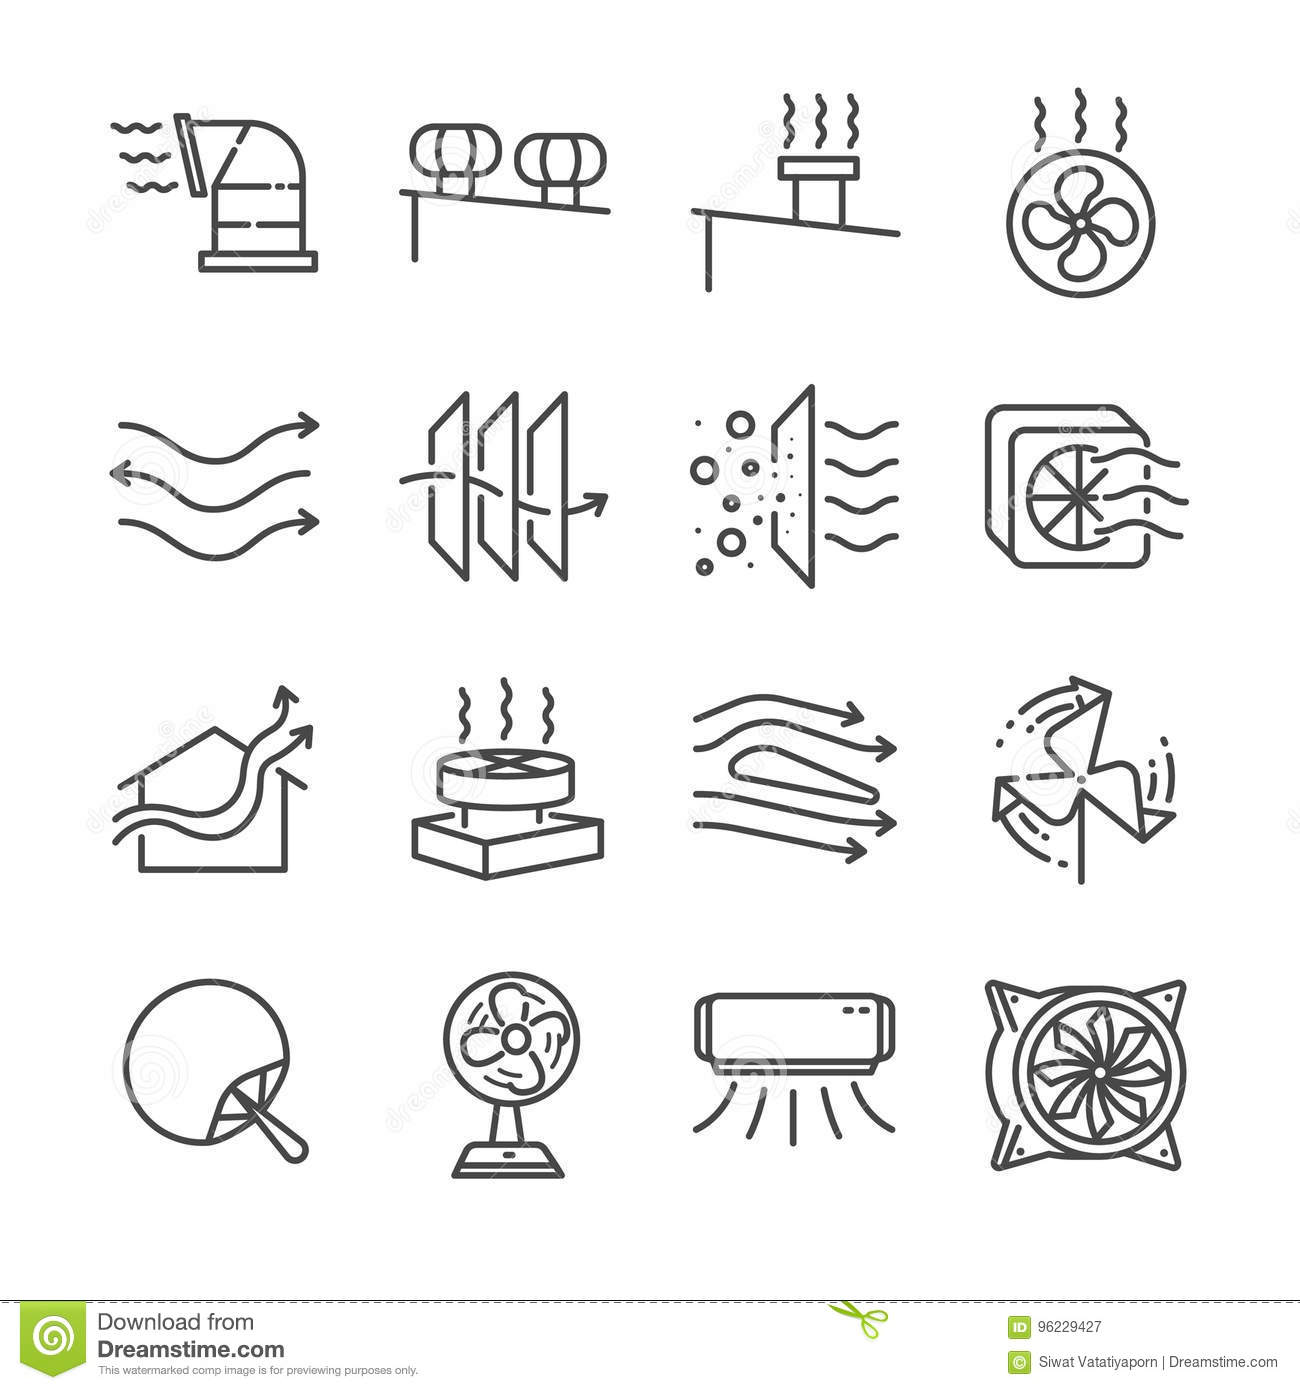 Ventilation stock illustrations 3764 ventilation stock included the icons as airflow turbine fan air buycottarizona Image collections